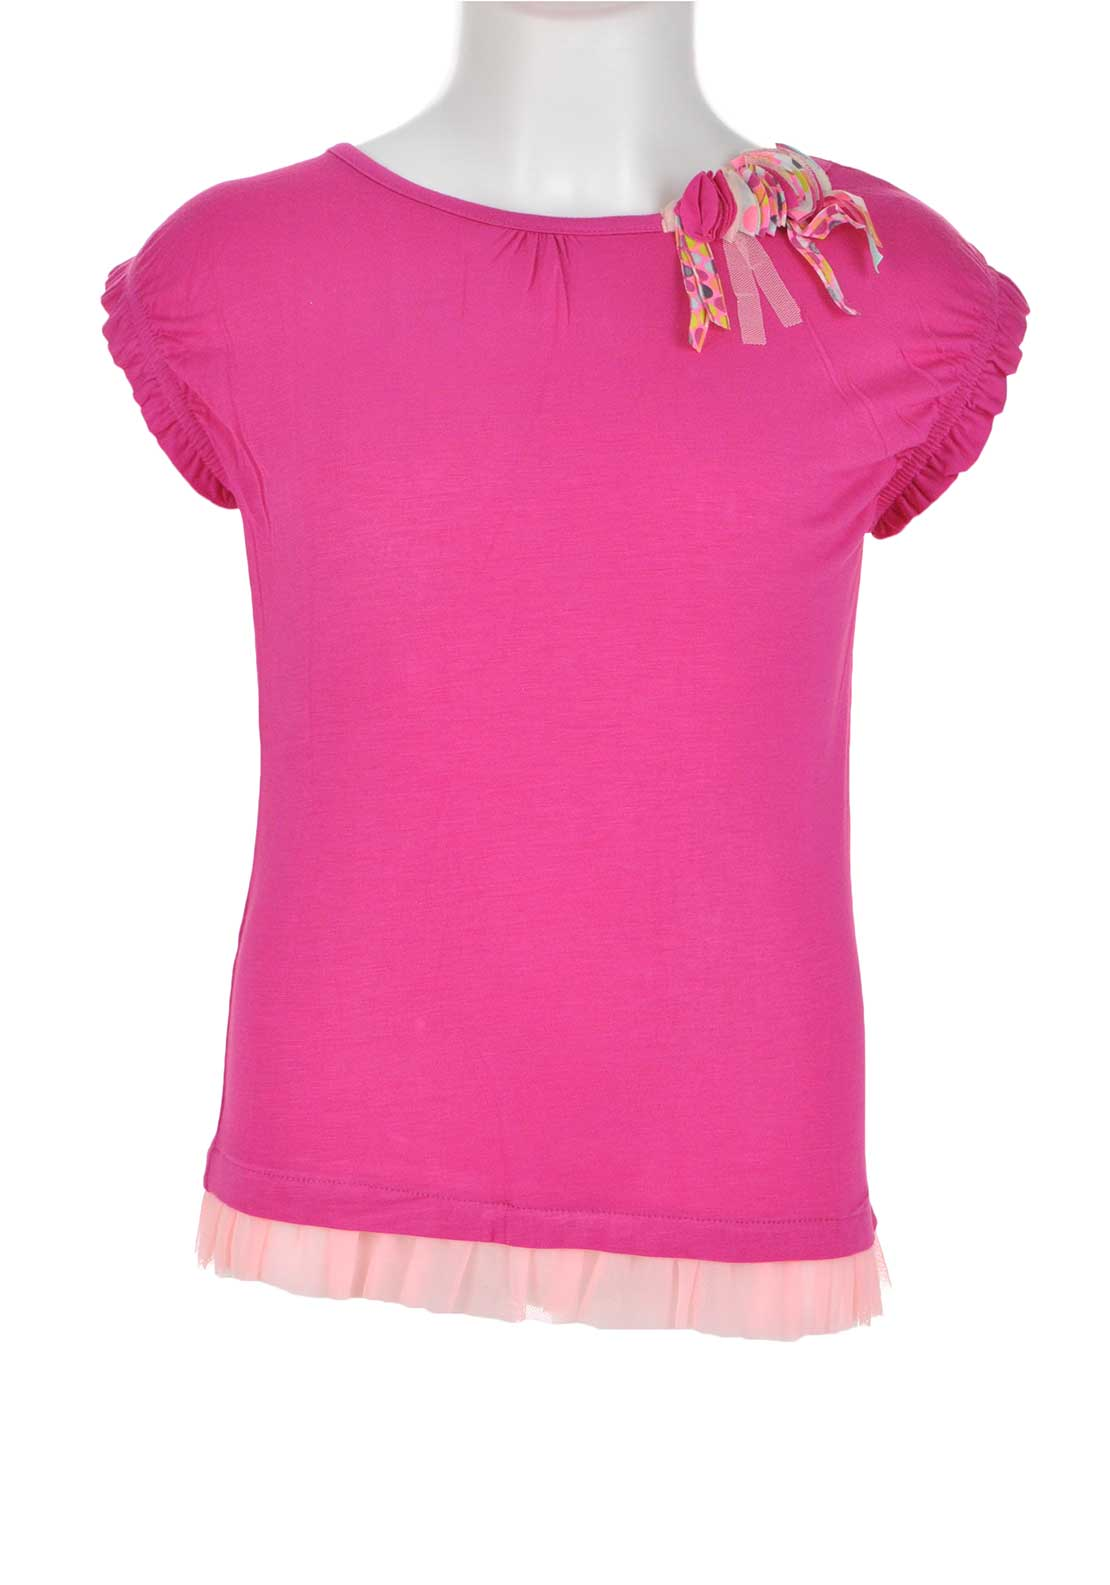 Tuc Tuc Girls Tulle Trim Embroidered Top, Pink